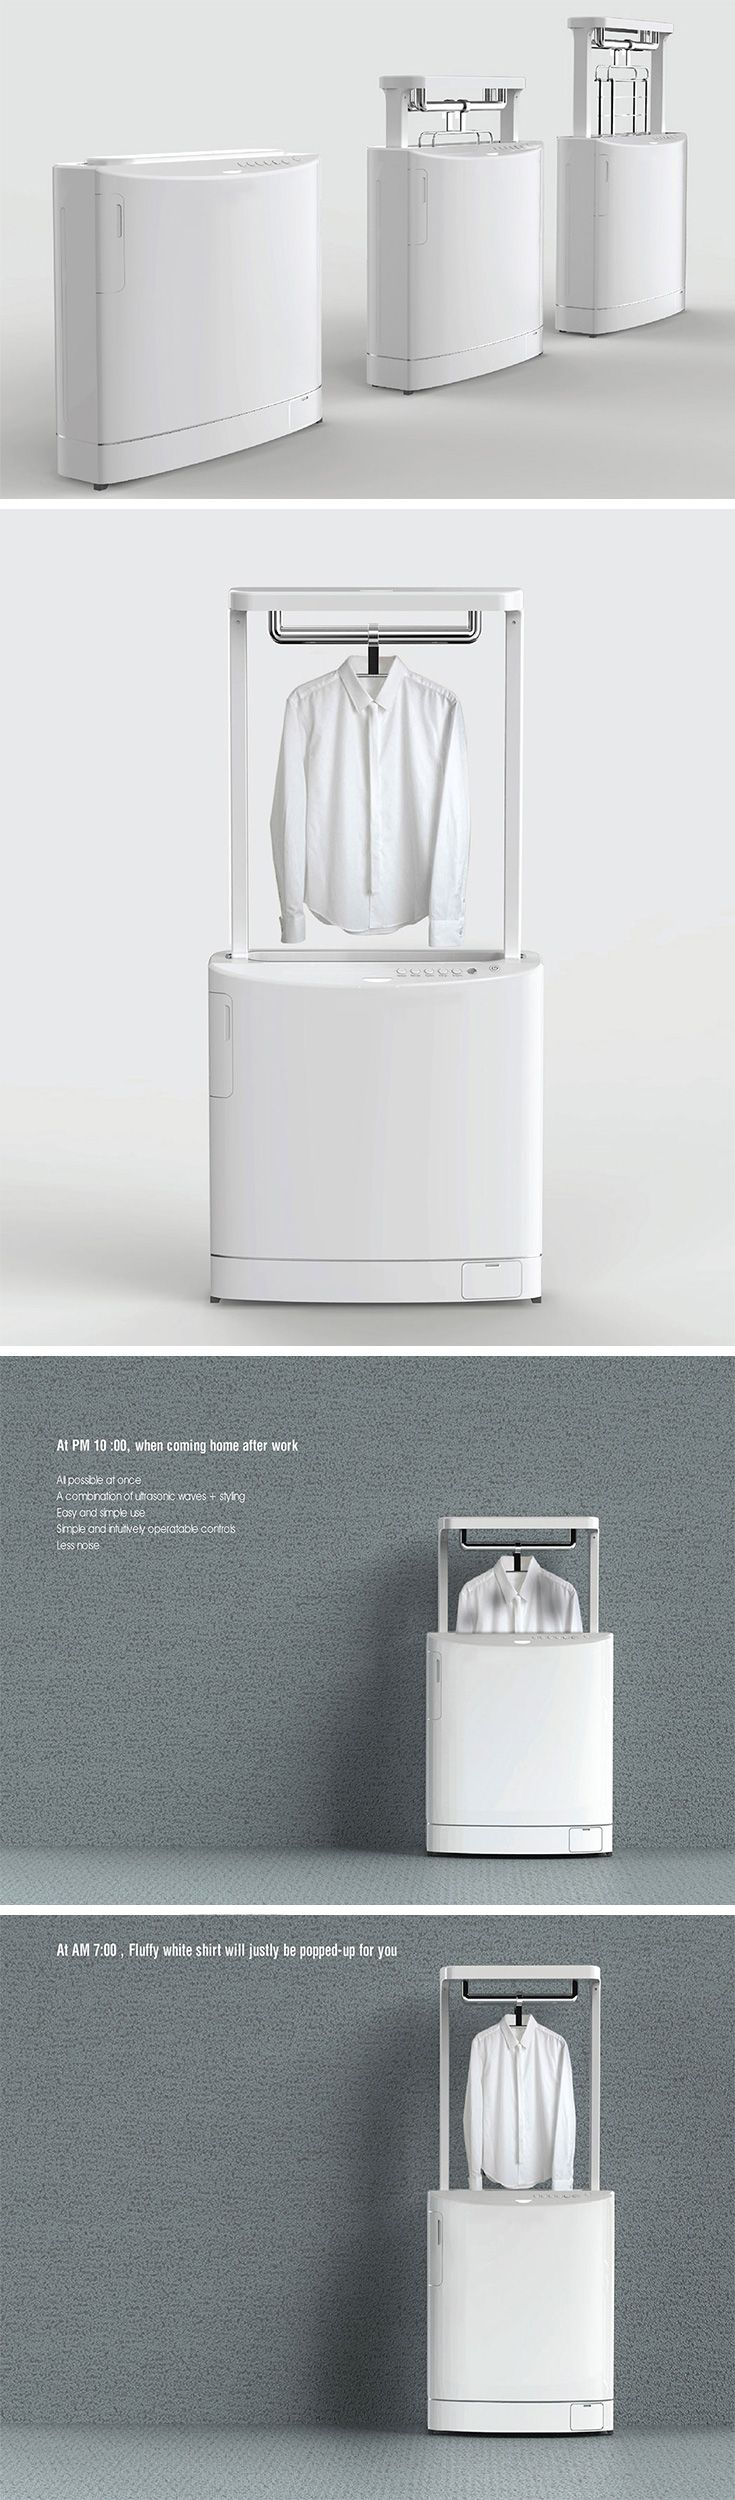 This is called Pop-Up Laundry and it's a twist on the washing machine that takes inspiration from the toaster. Yes, you heard that right! The super-slim design saves space in a single person's apartment or home where extra room may not be available. Simply hang up your dirty shirt and with the push of a button it will lower and the cleaning/pressing process will begin.